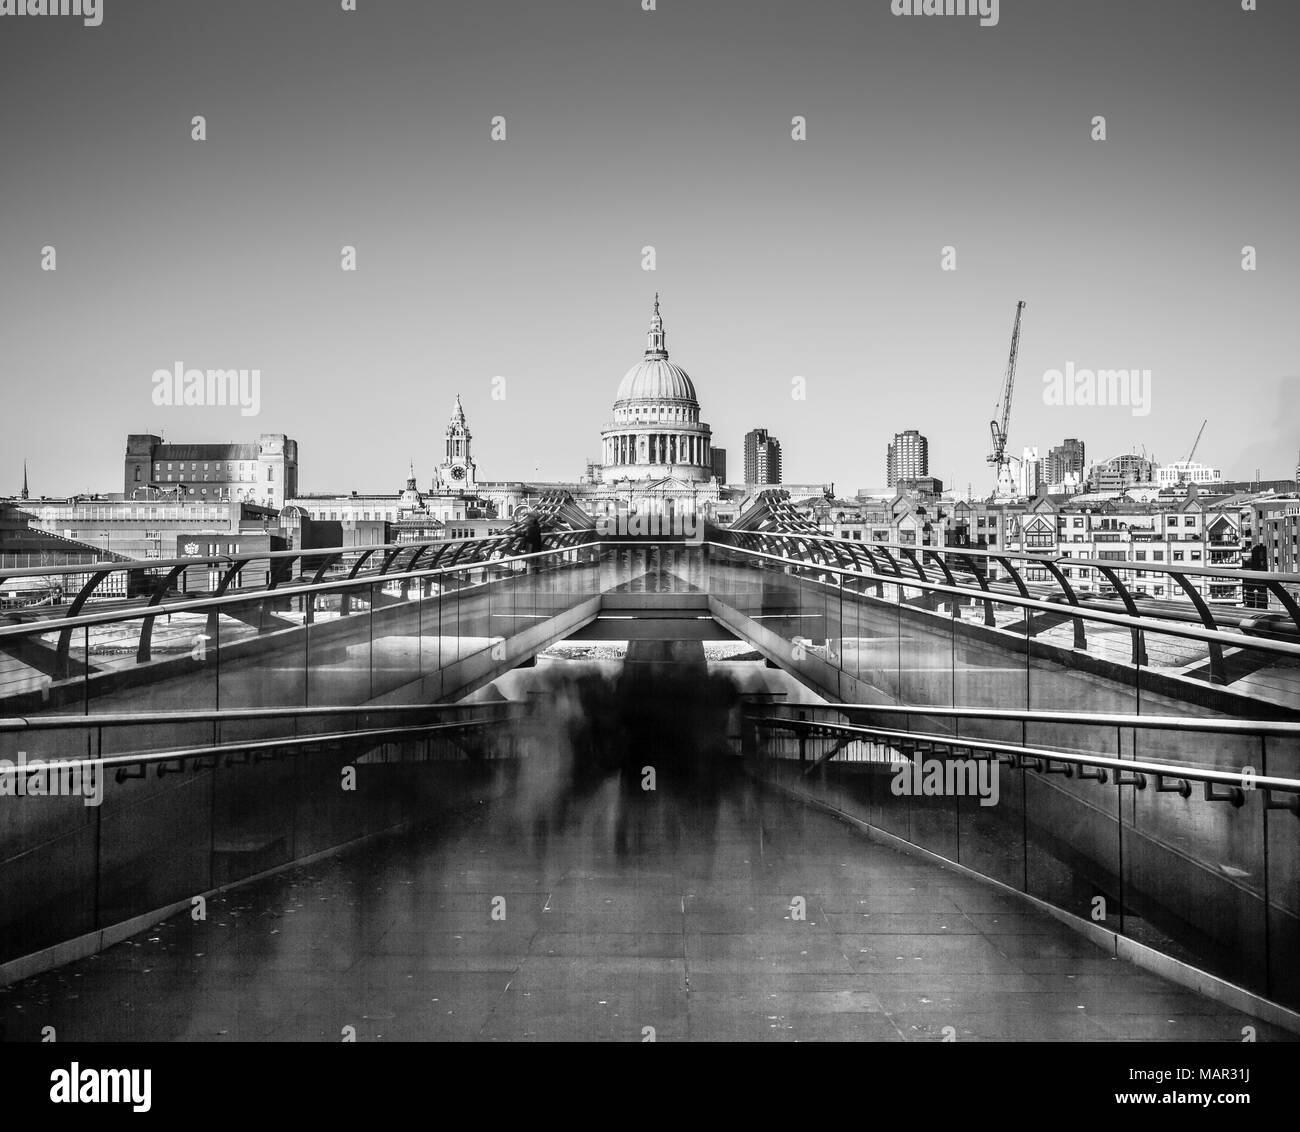 Ghostly figures going to work in long exposure image of St. Paul's from Millennium Bridge, City of London, London, England, United Kingdom, Europe - Stock Image